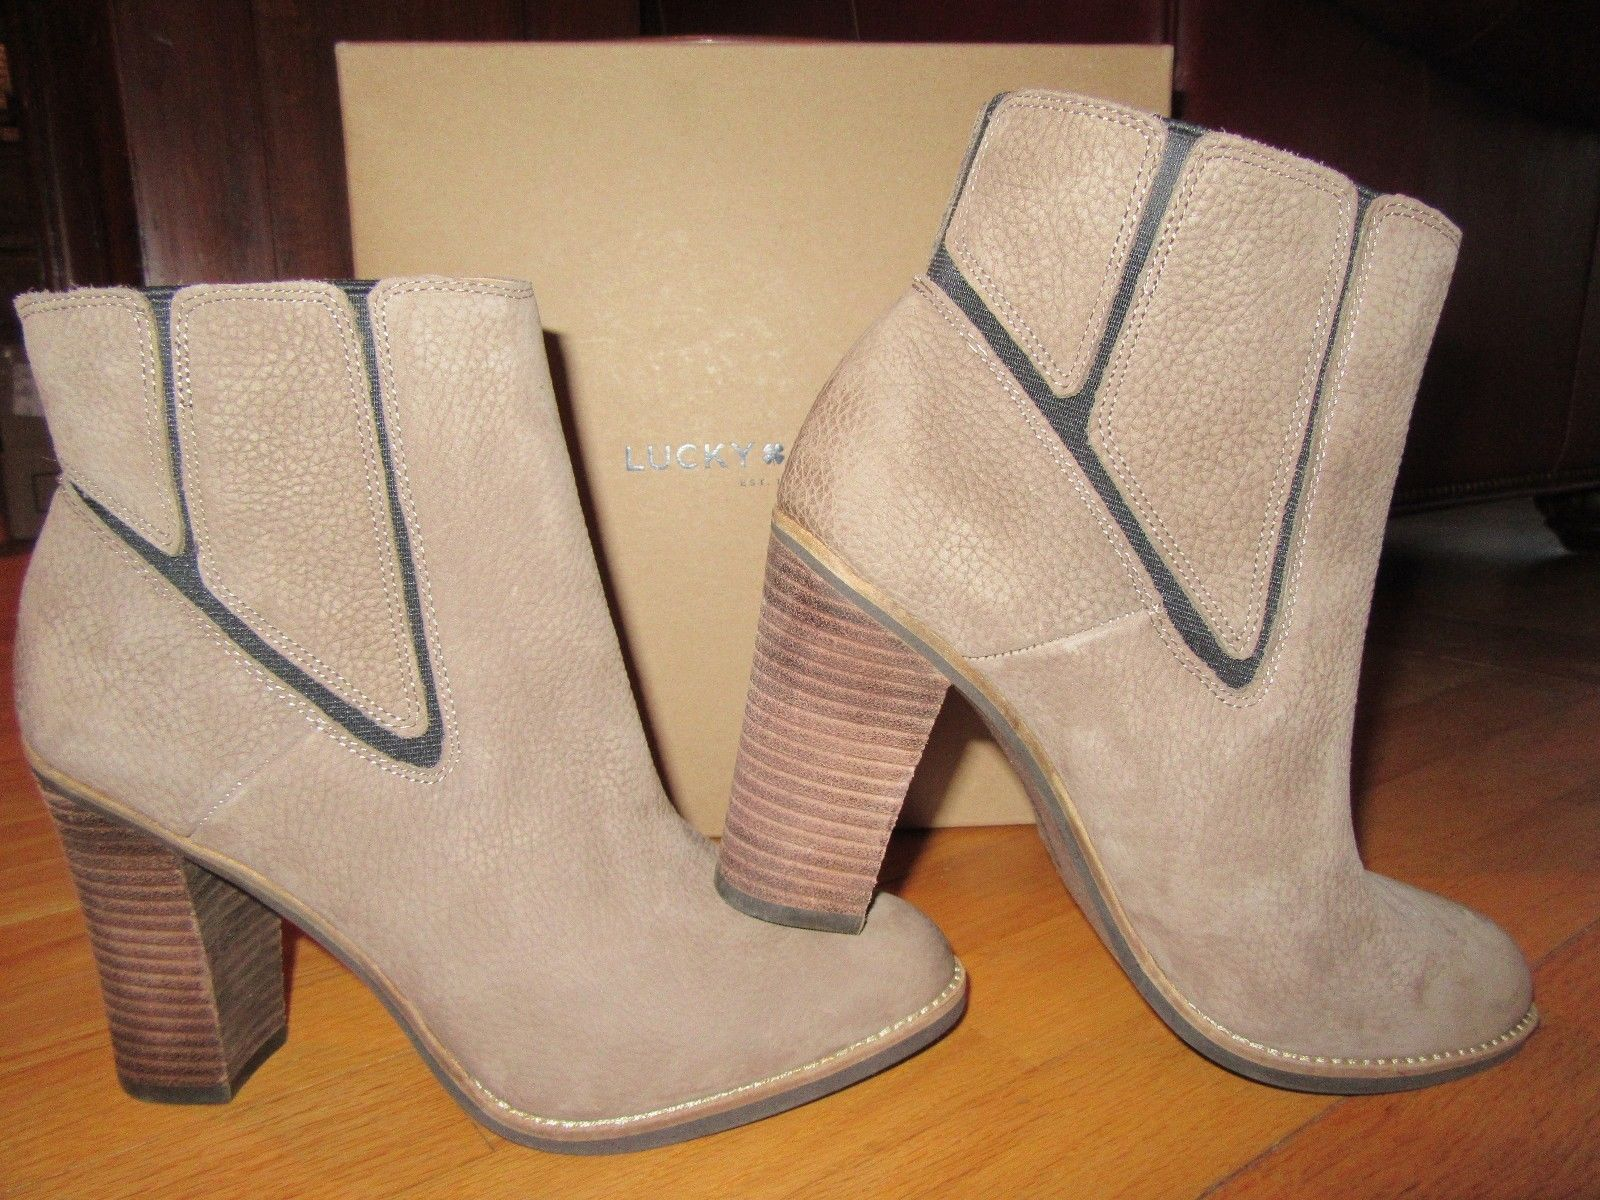 2f6b7c0e976 6P LUCKY BRAND WOMENS LEATHER BOOTS RARE BRINDLE EMBOSSED SIZE 9M